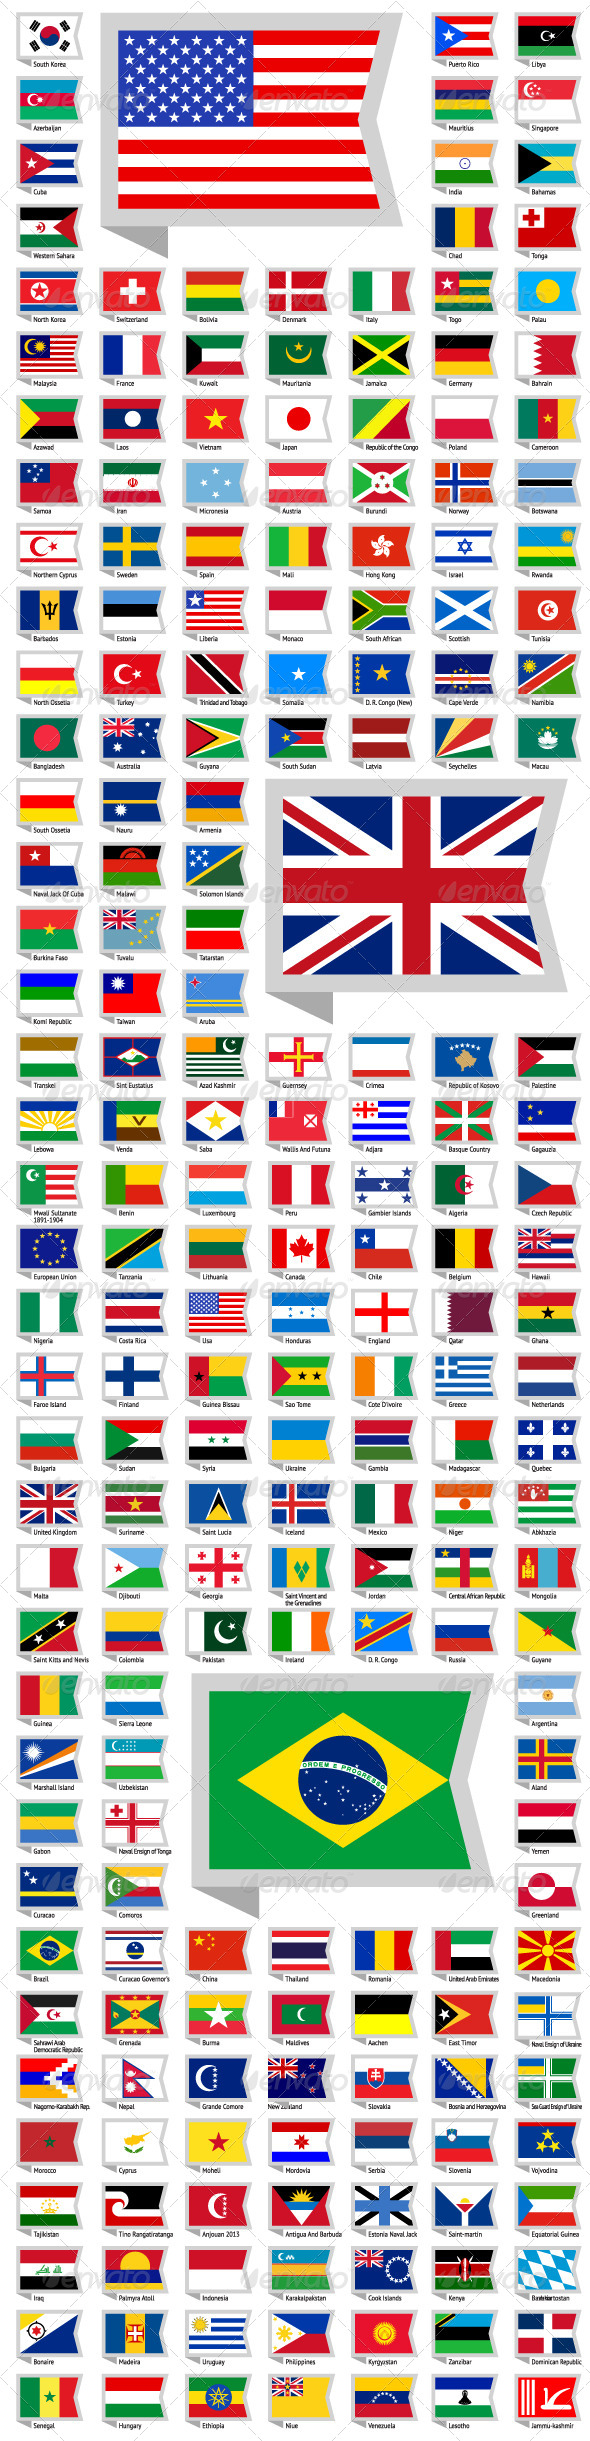 GraphicRiver 219 Flags of World 7350980